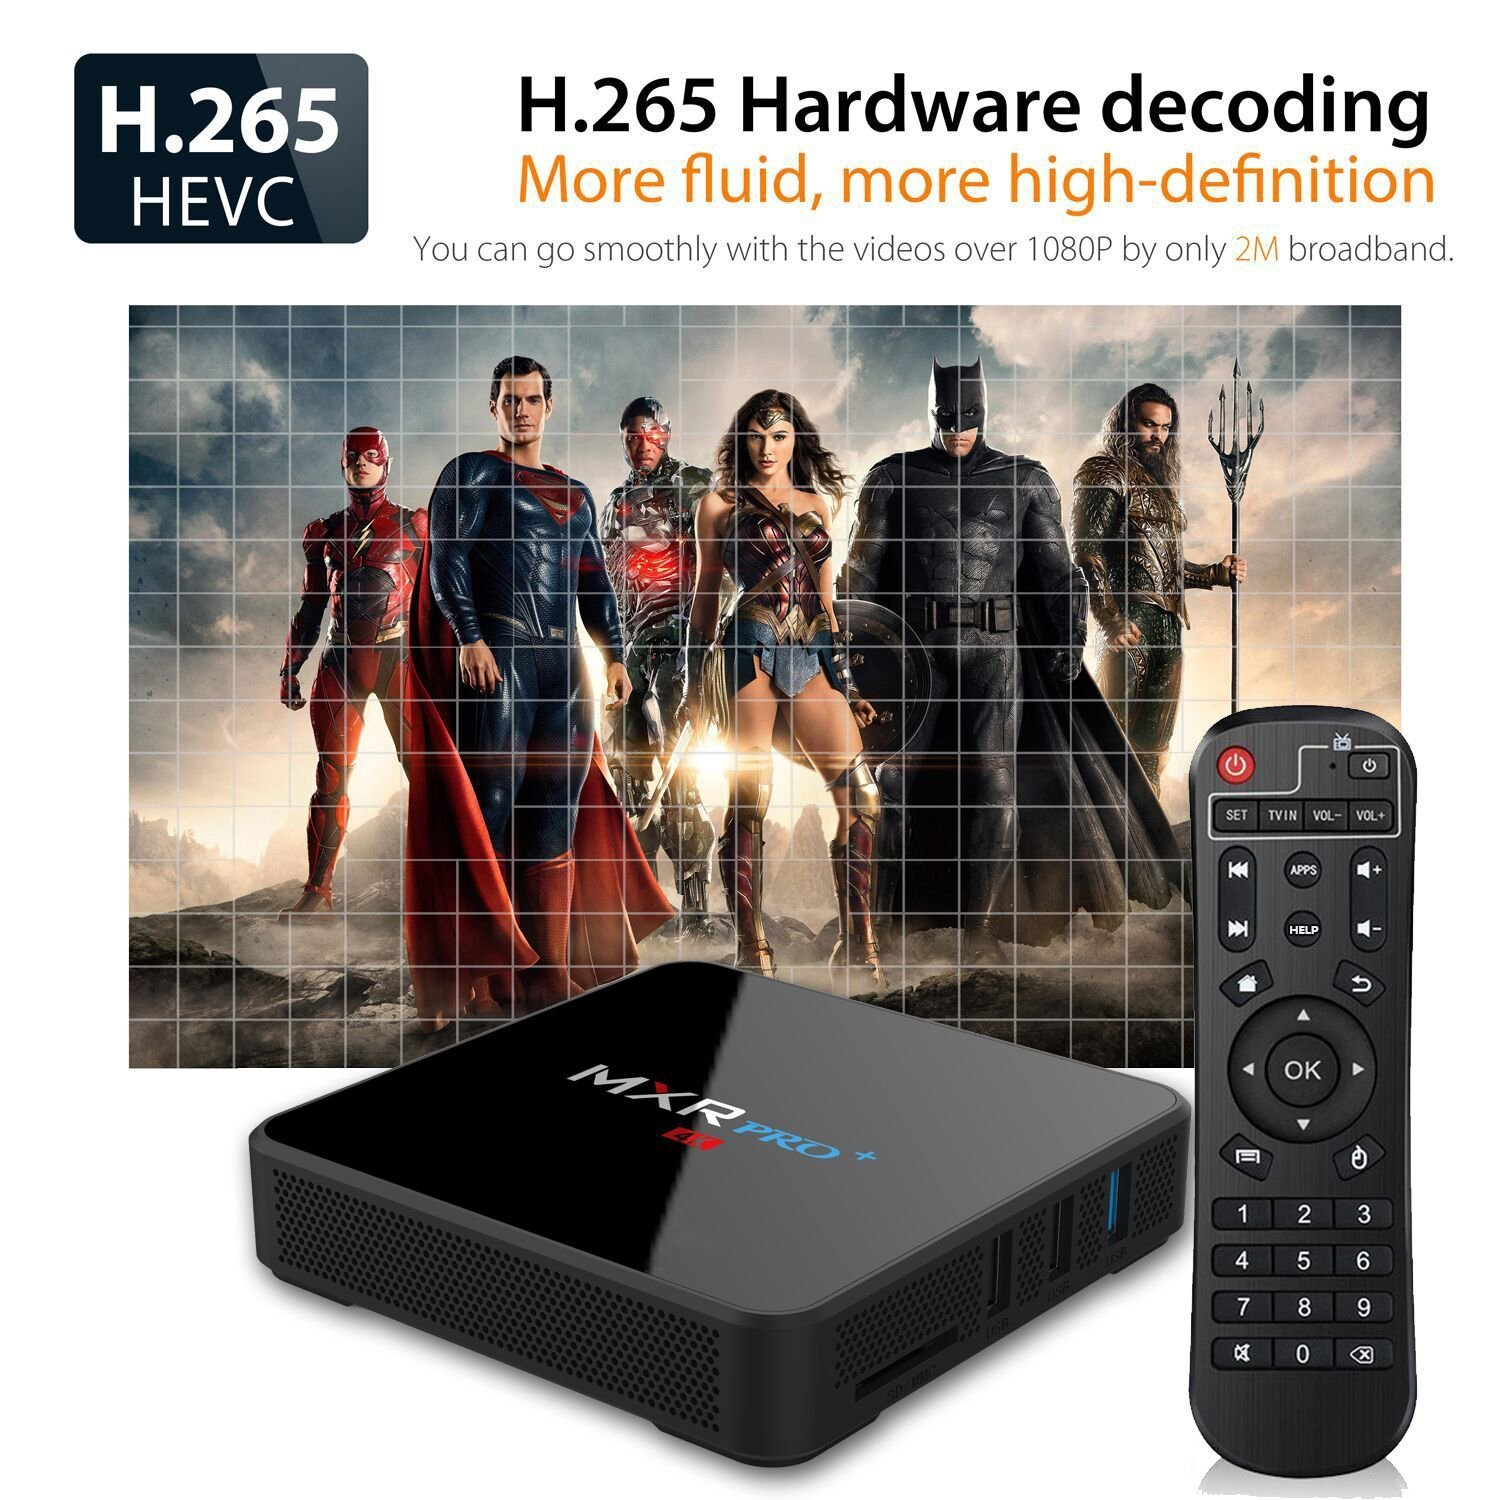 Android TV Box, MXR PRO Plus Android 7.1 TV Box with RK3328 Quad Core 4GB 32GB Smart Box Support 4K 3D H.265 Ultra HD 2.4G Wifi(2018 Update) by Mrtech